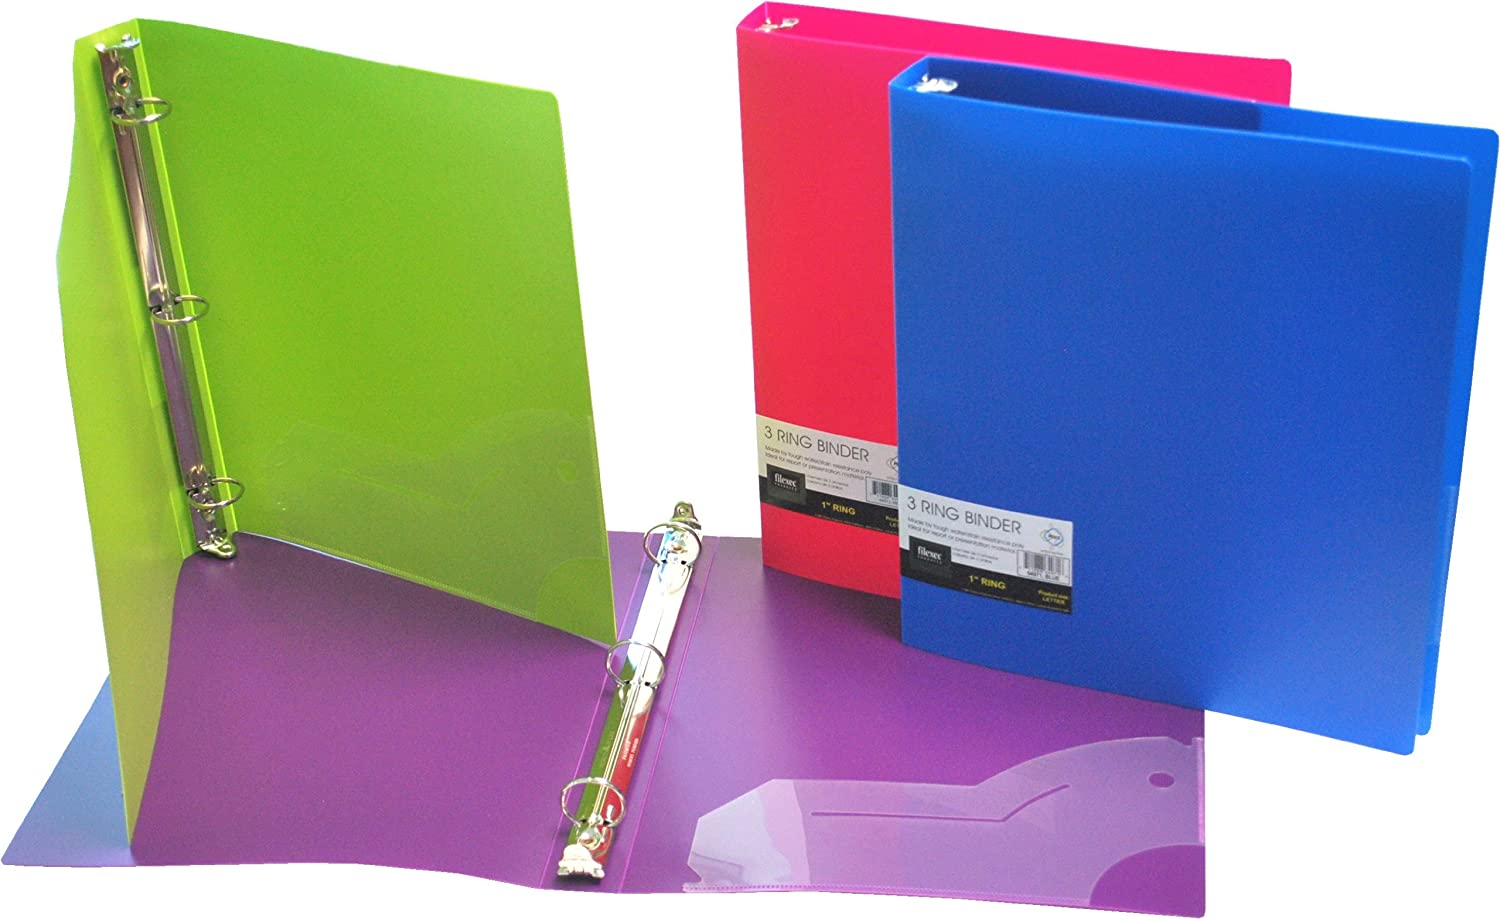 1//2 letter 3 ring binder 9 by 7 inch boxes of 20 translucent vinyl covers